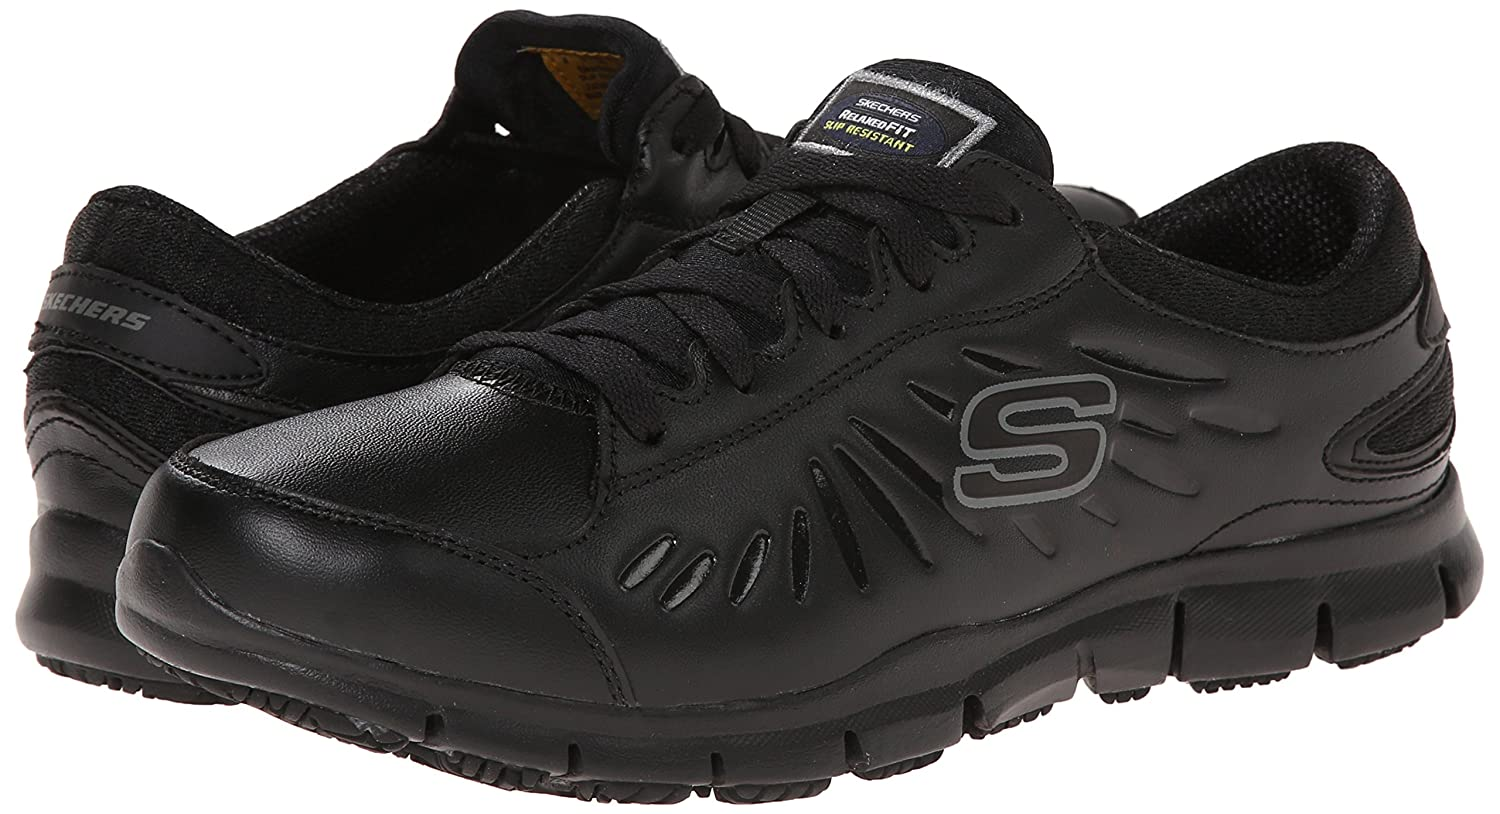 Skechers for B00GM46UYI Work Women's Eldred Slip Resistant Shoe B00GM46UYI for 7.5 B(M) US|Black 548826